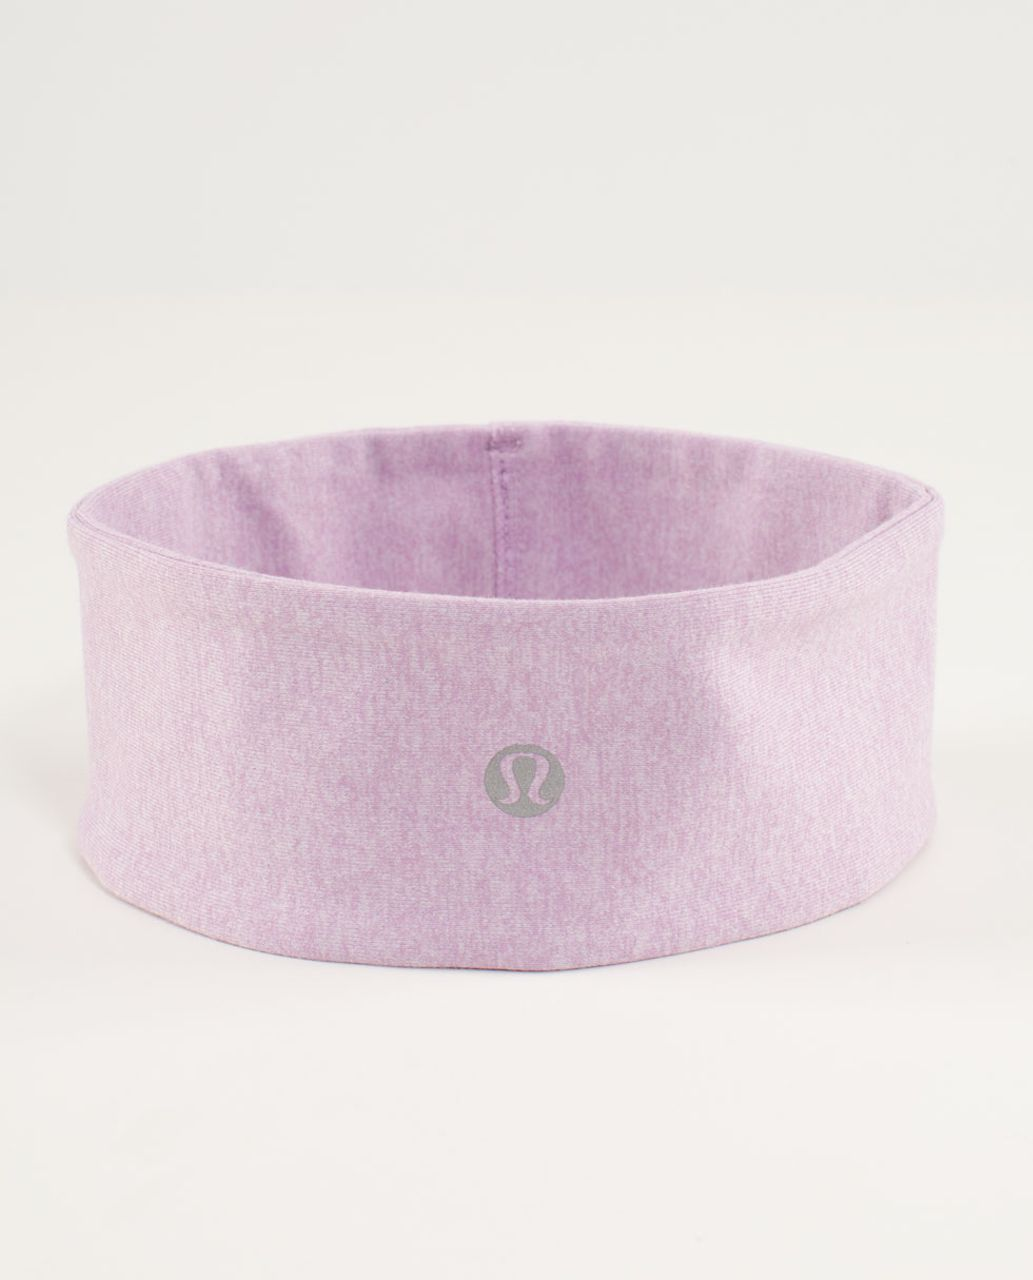 Lululemon Lucky Luon Headband - Heathered Rose Quartz